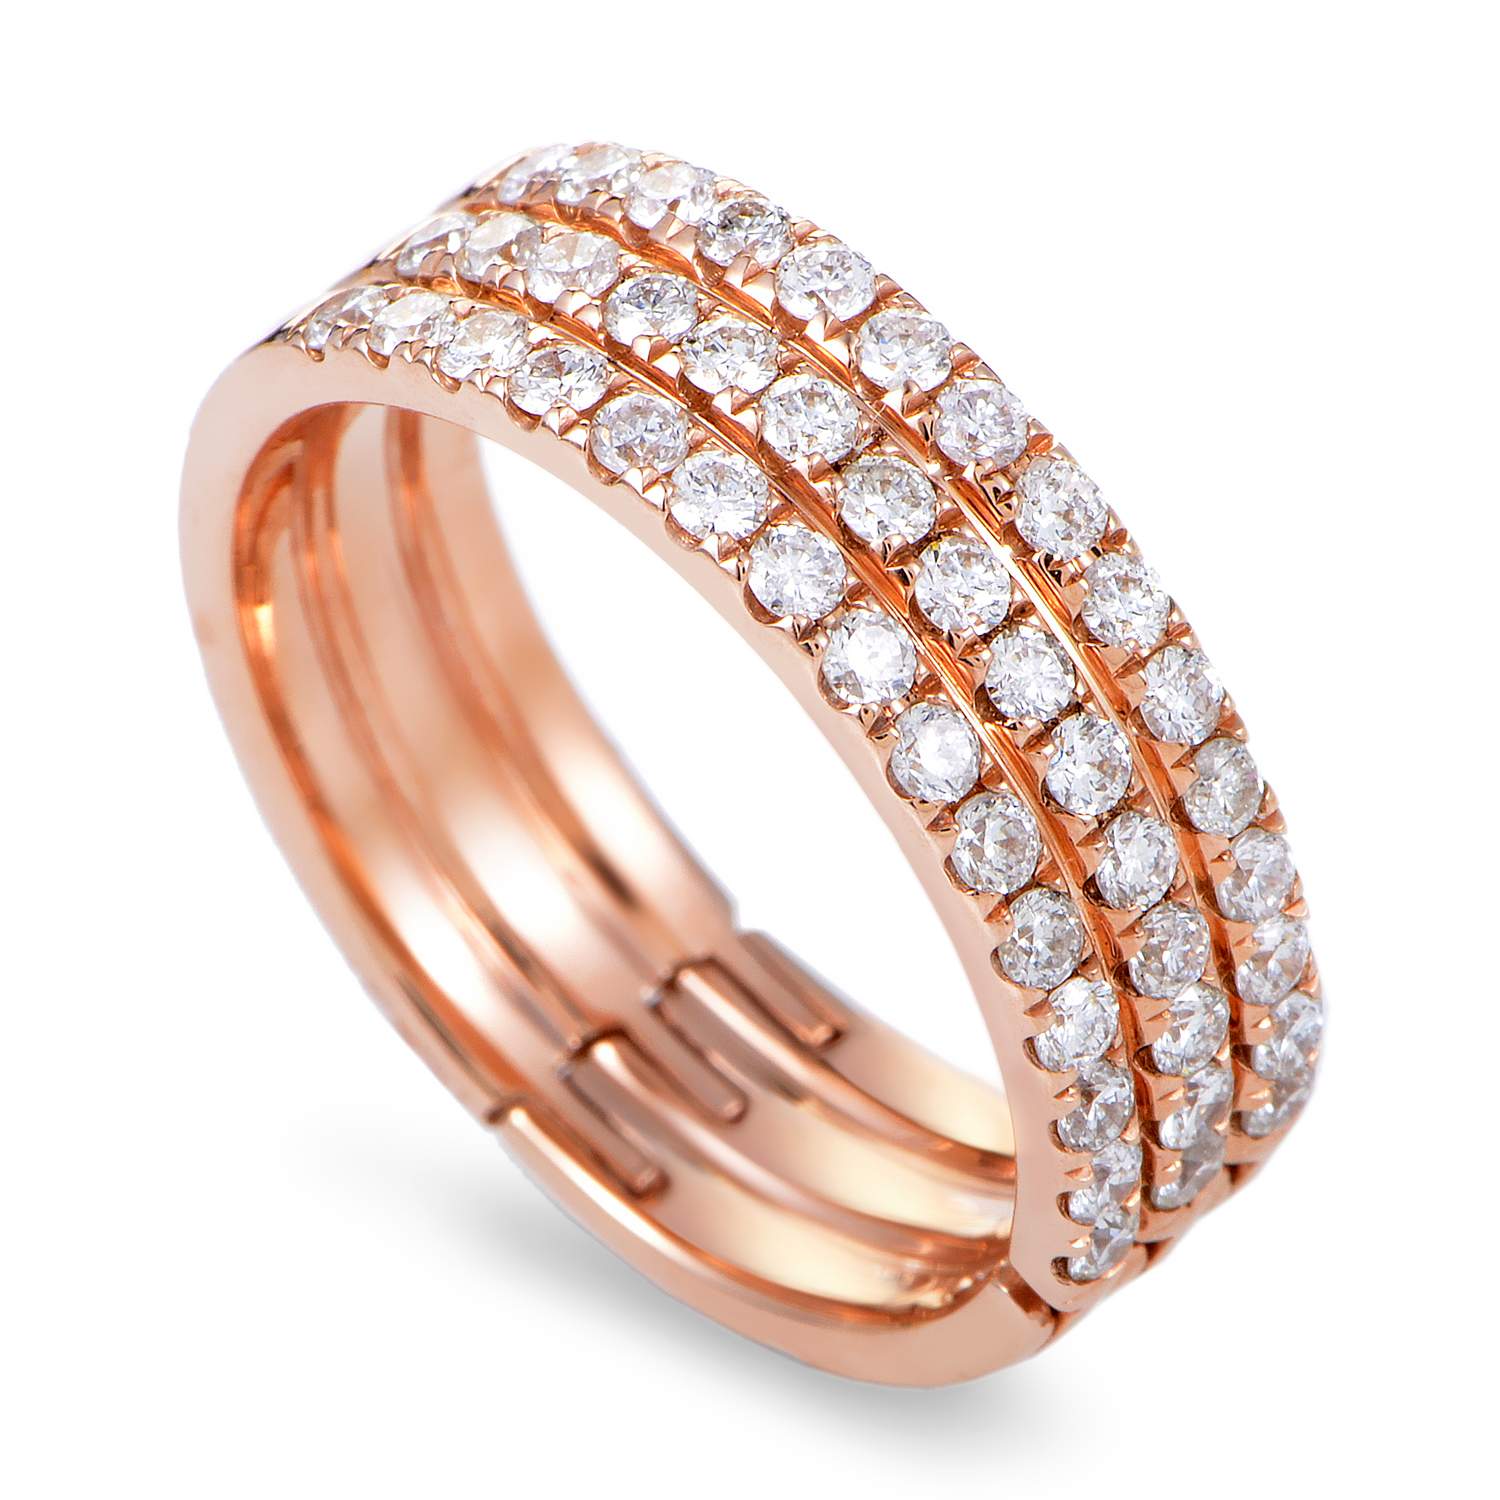 Women's 18K Rose Gold Diamond Pave Band Ring KOBW925ABRZ